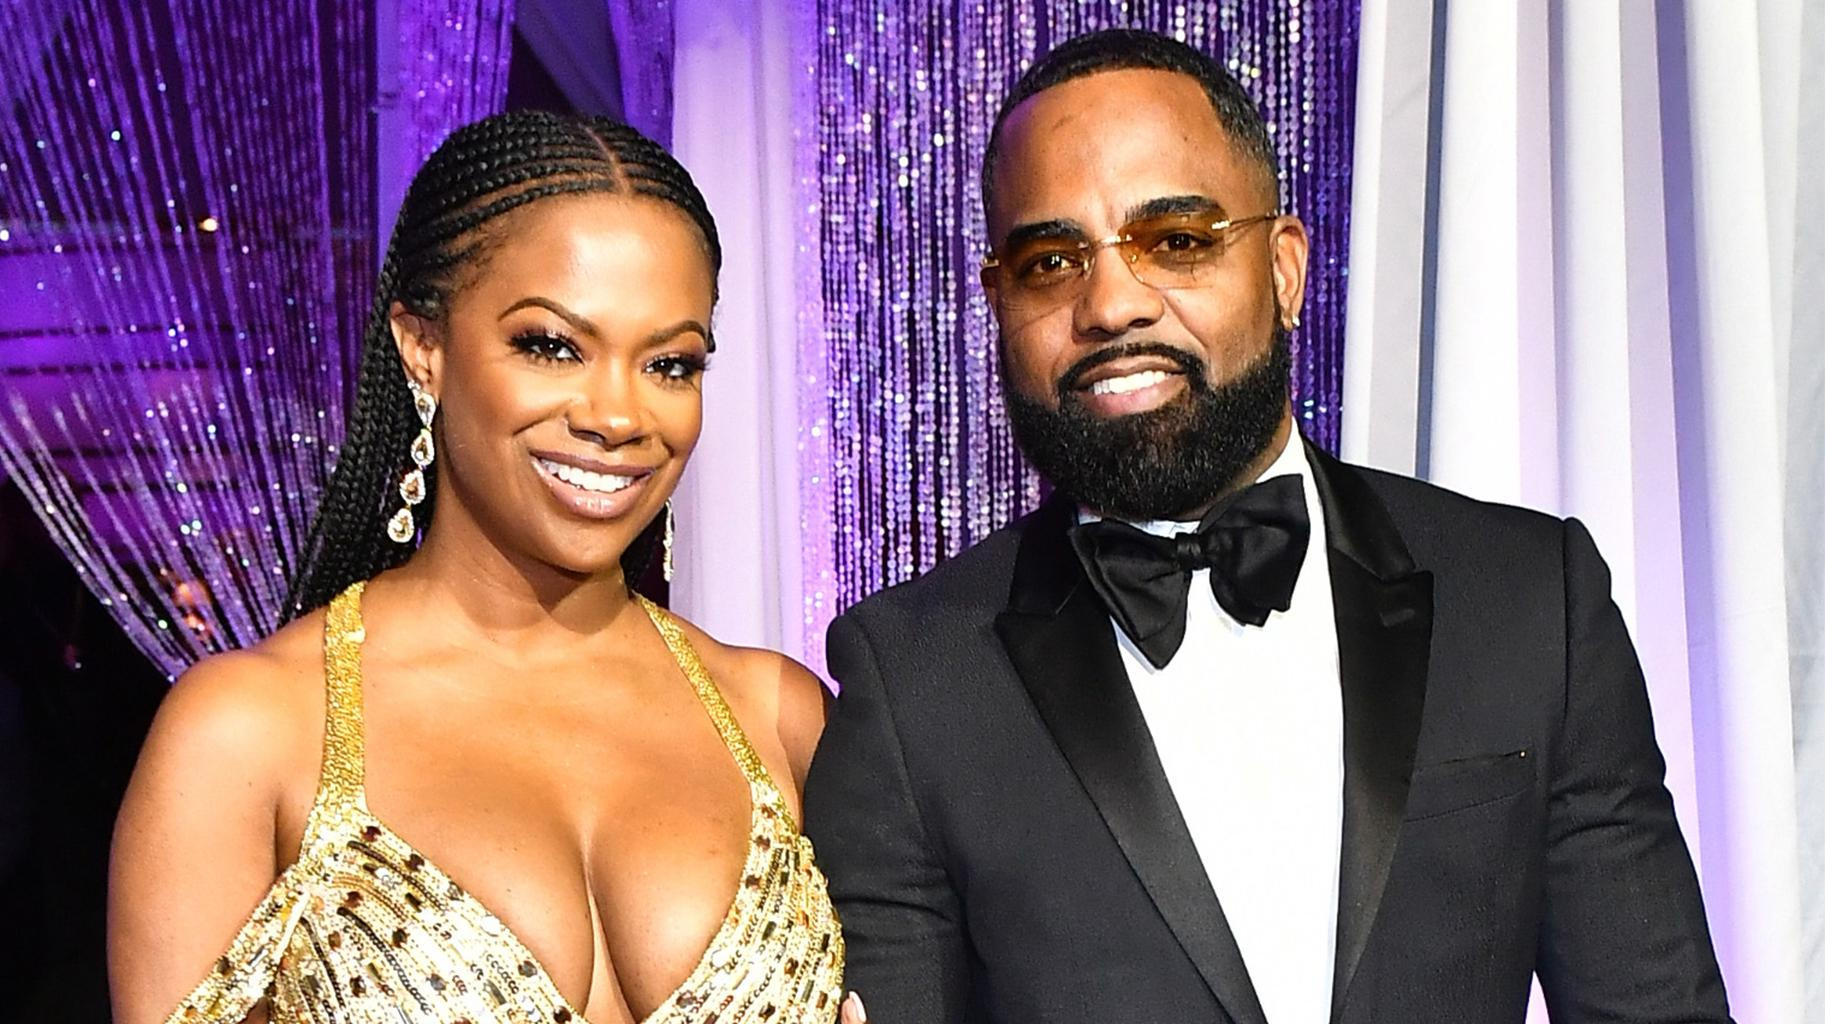 Kandi Burruss Has A Life Update On Her YouTube Channel - Here's Her Video